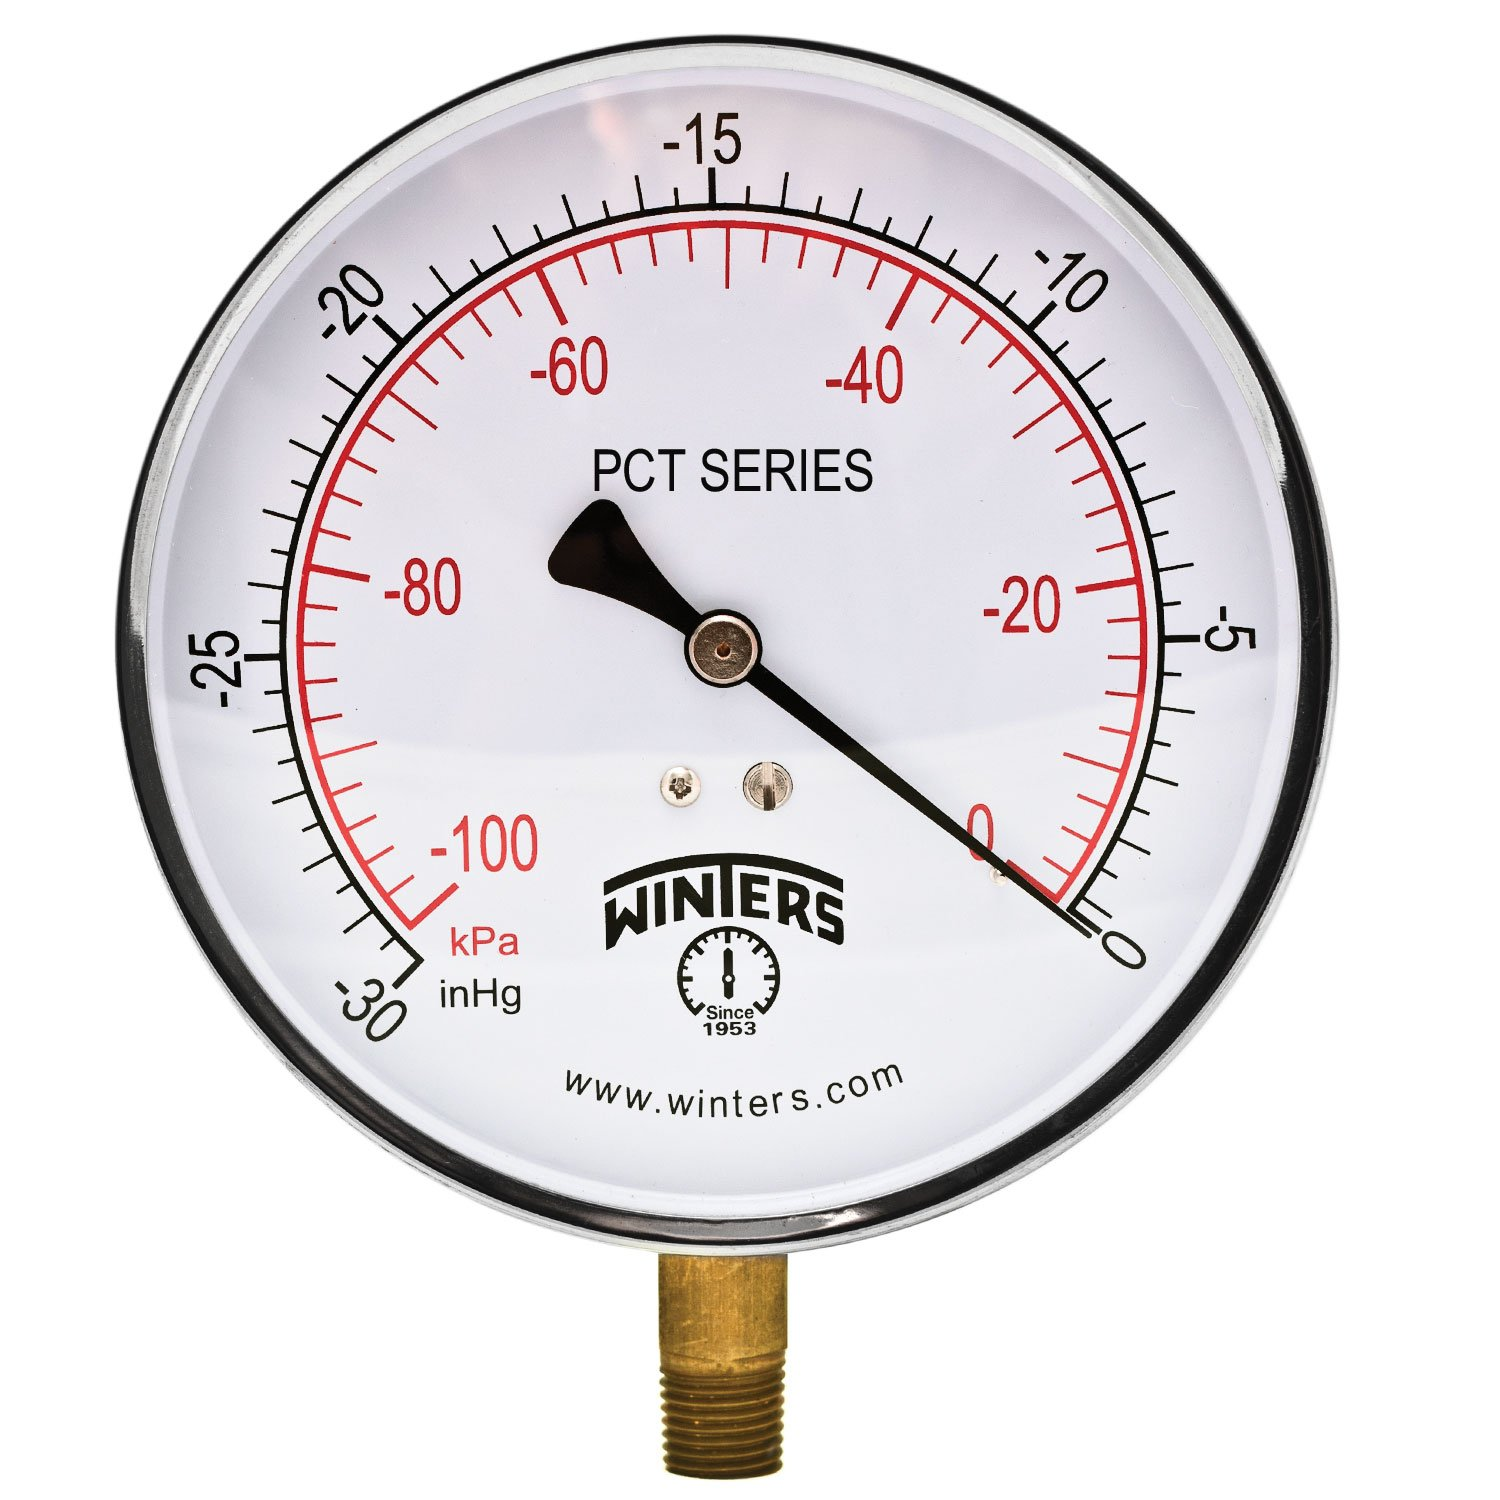 Winters PCT Series Stainless Steel 304 Dual Scale Contractor Pressure Gauge 30Hg Vacuum kpa 4 1 2 Dial Display 1% Accuracy 1 4 NPT Bottom Mount